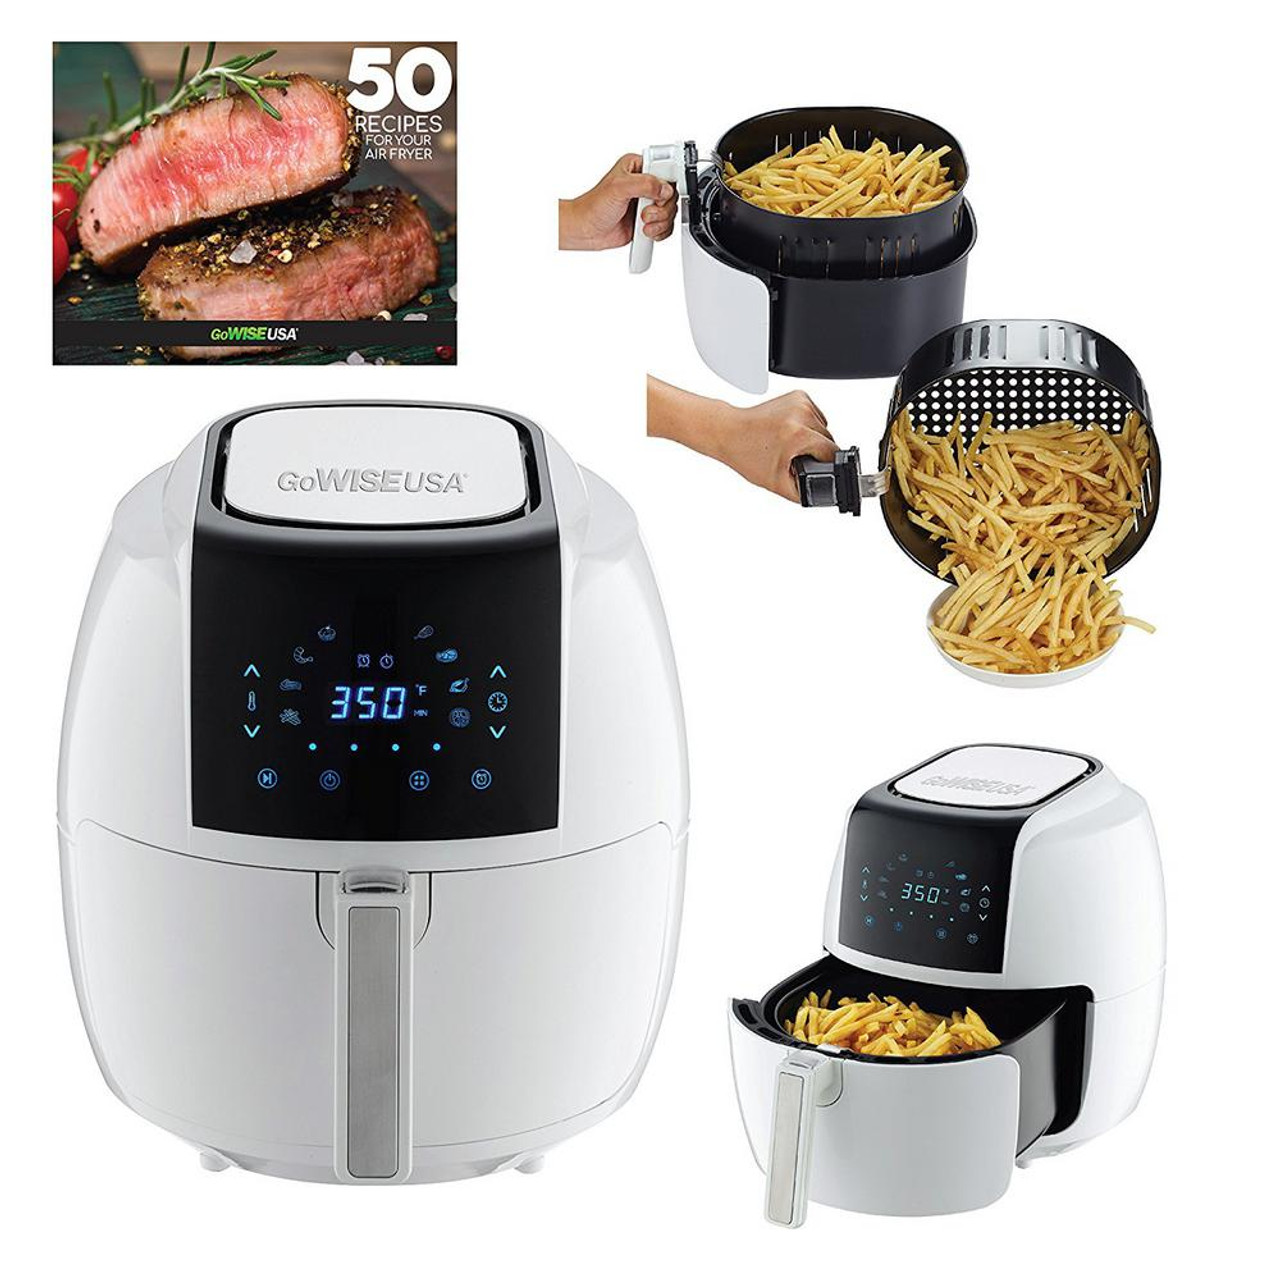 Gowise Air Fryer - (3.7, or 5.8 Qt) and in either (Black, Red, or White)